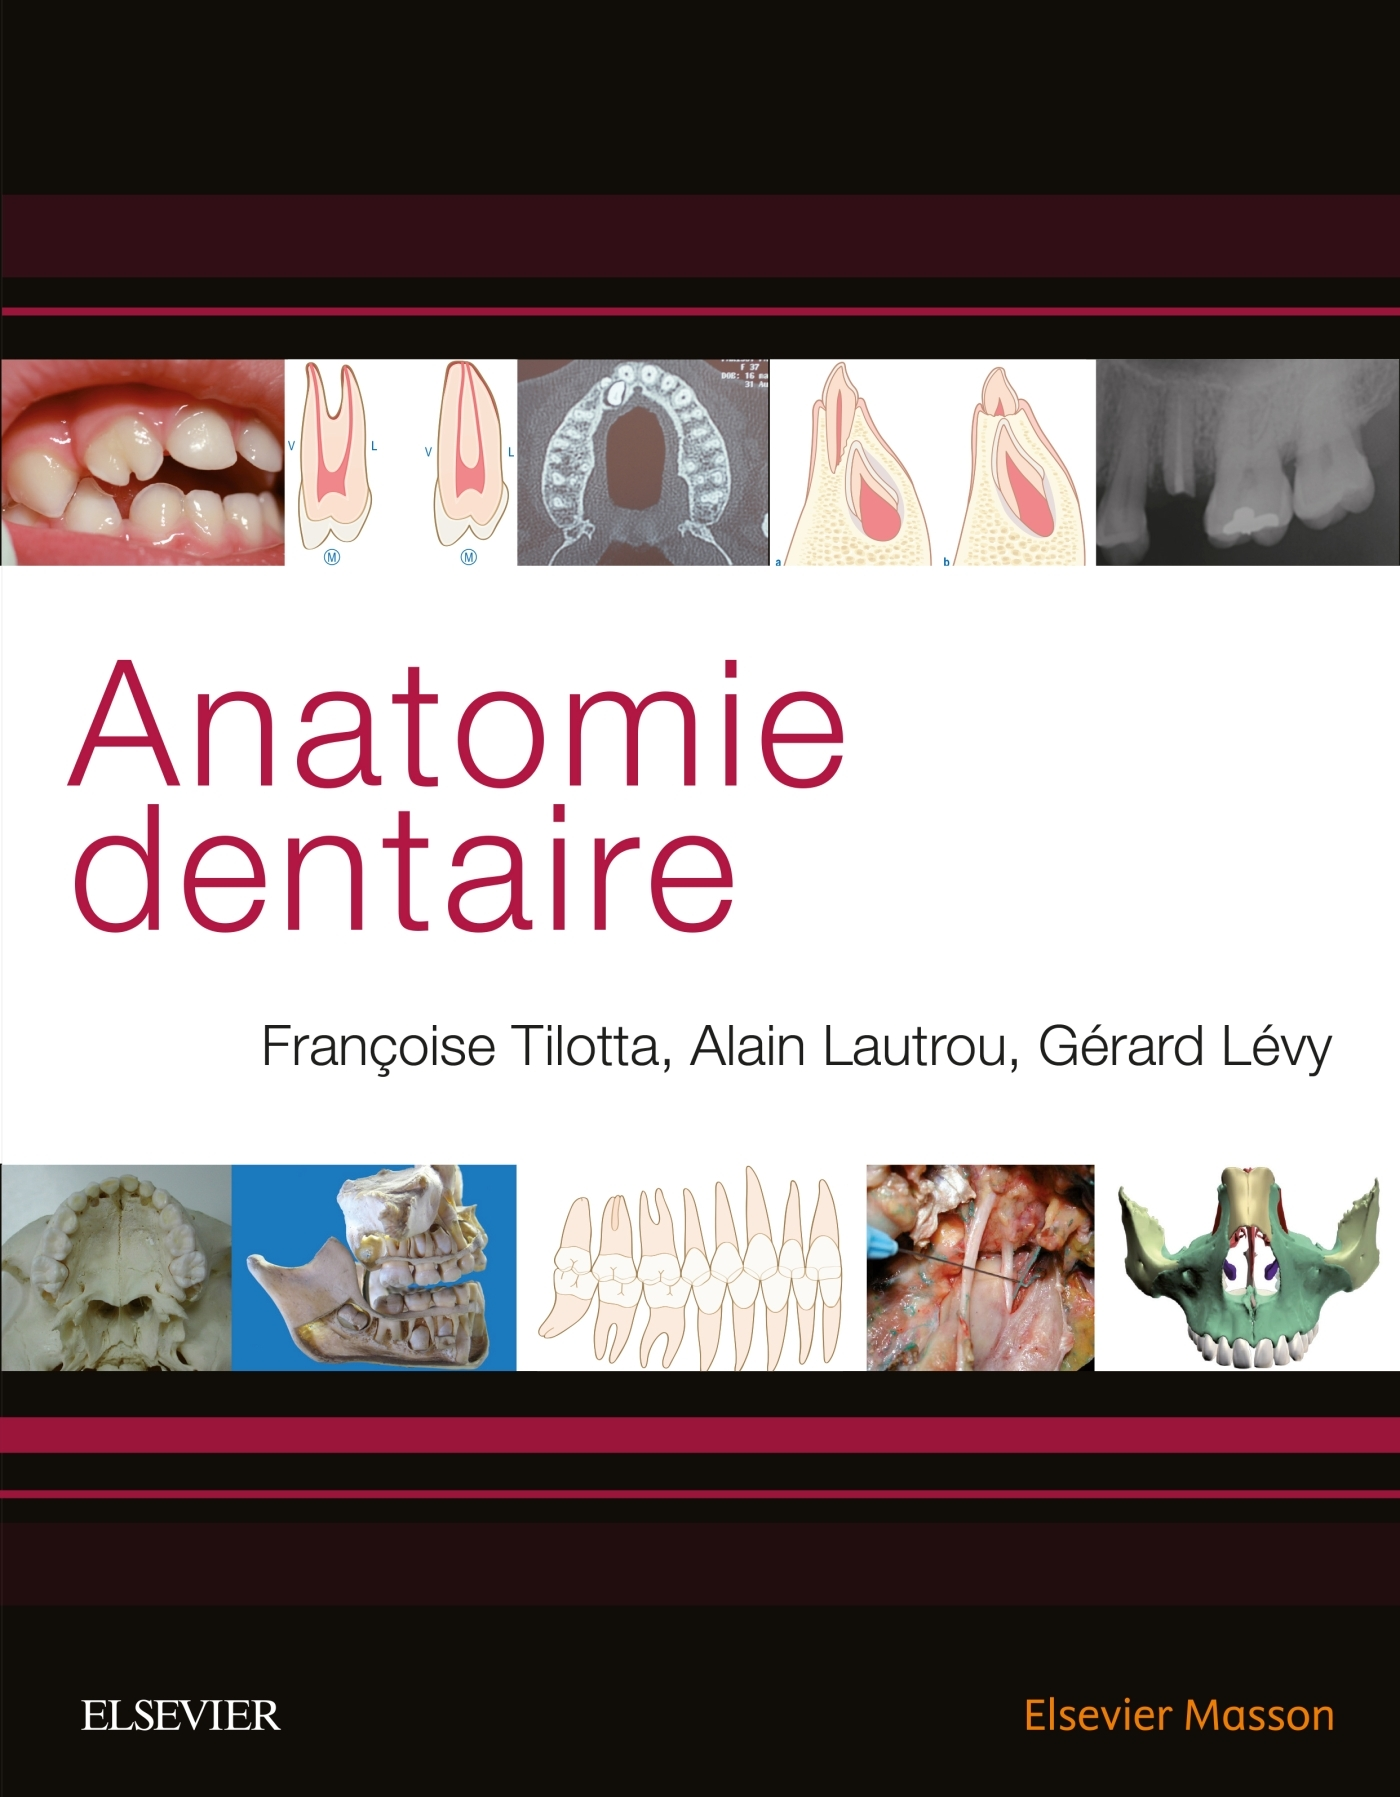 ANATOMIE DENTAIRE